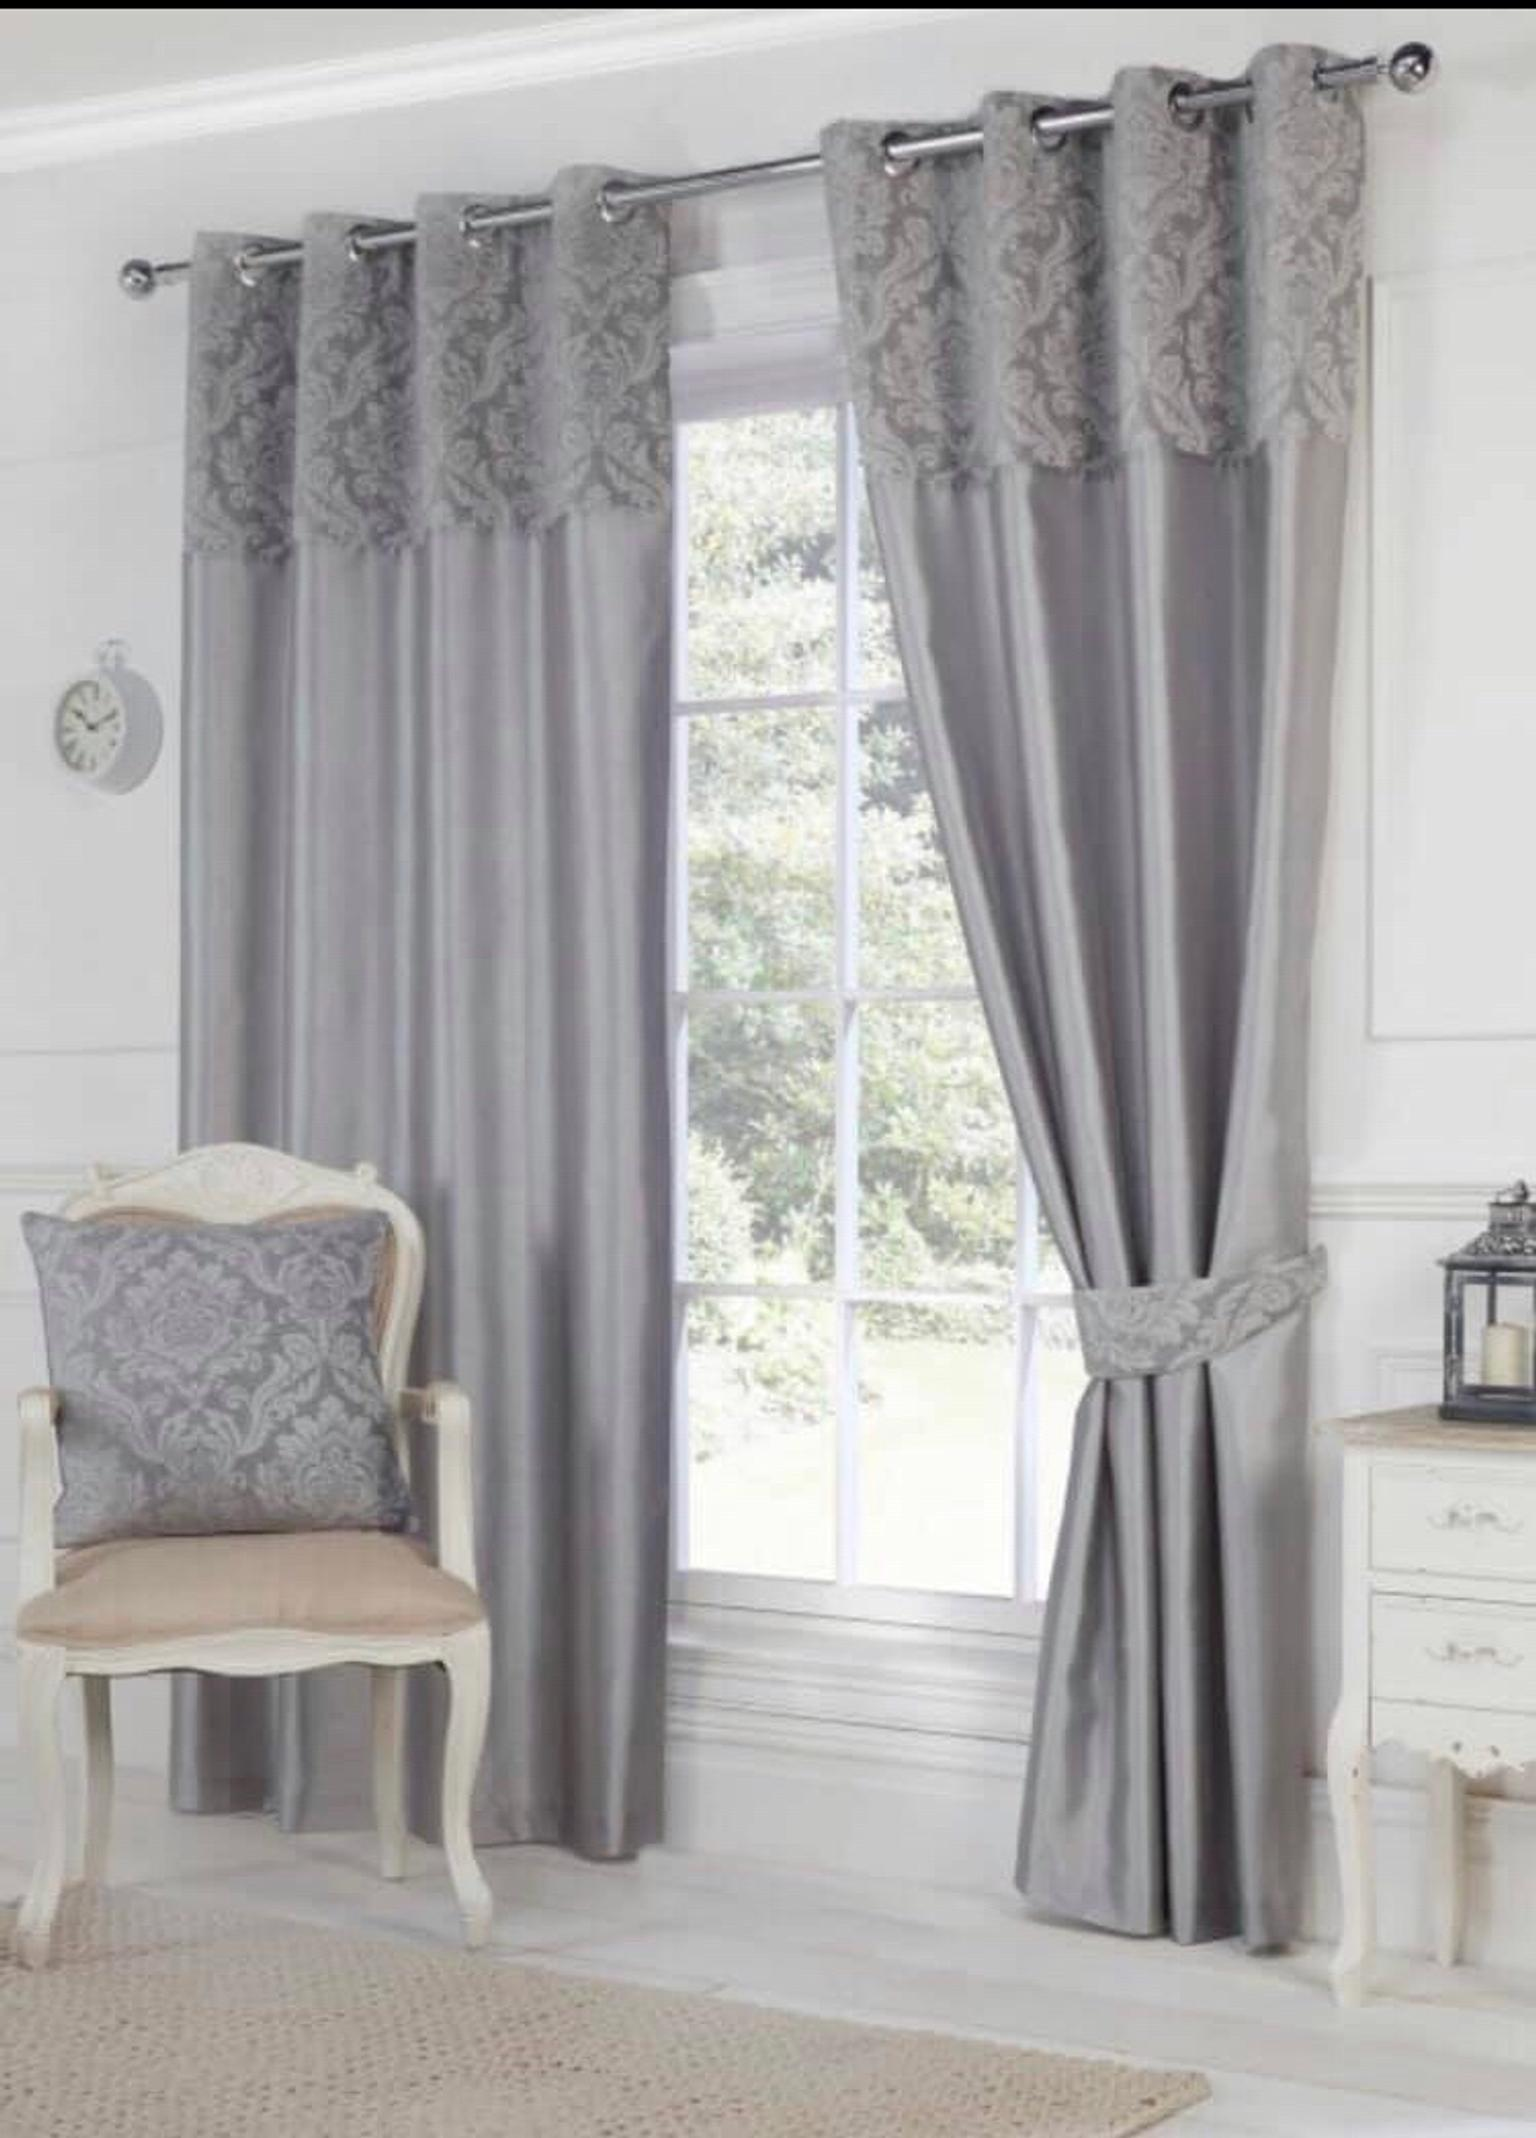 """A PAIR OF EYELET CURTAINS IN AUBERGINE//PURPLE  65/""""x72/""""  By K-LIVING MANHATTAN"""